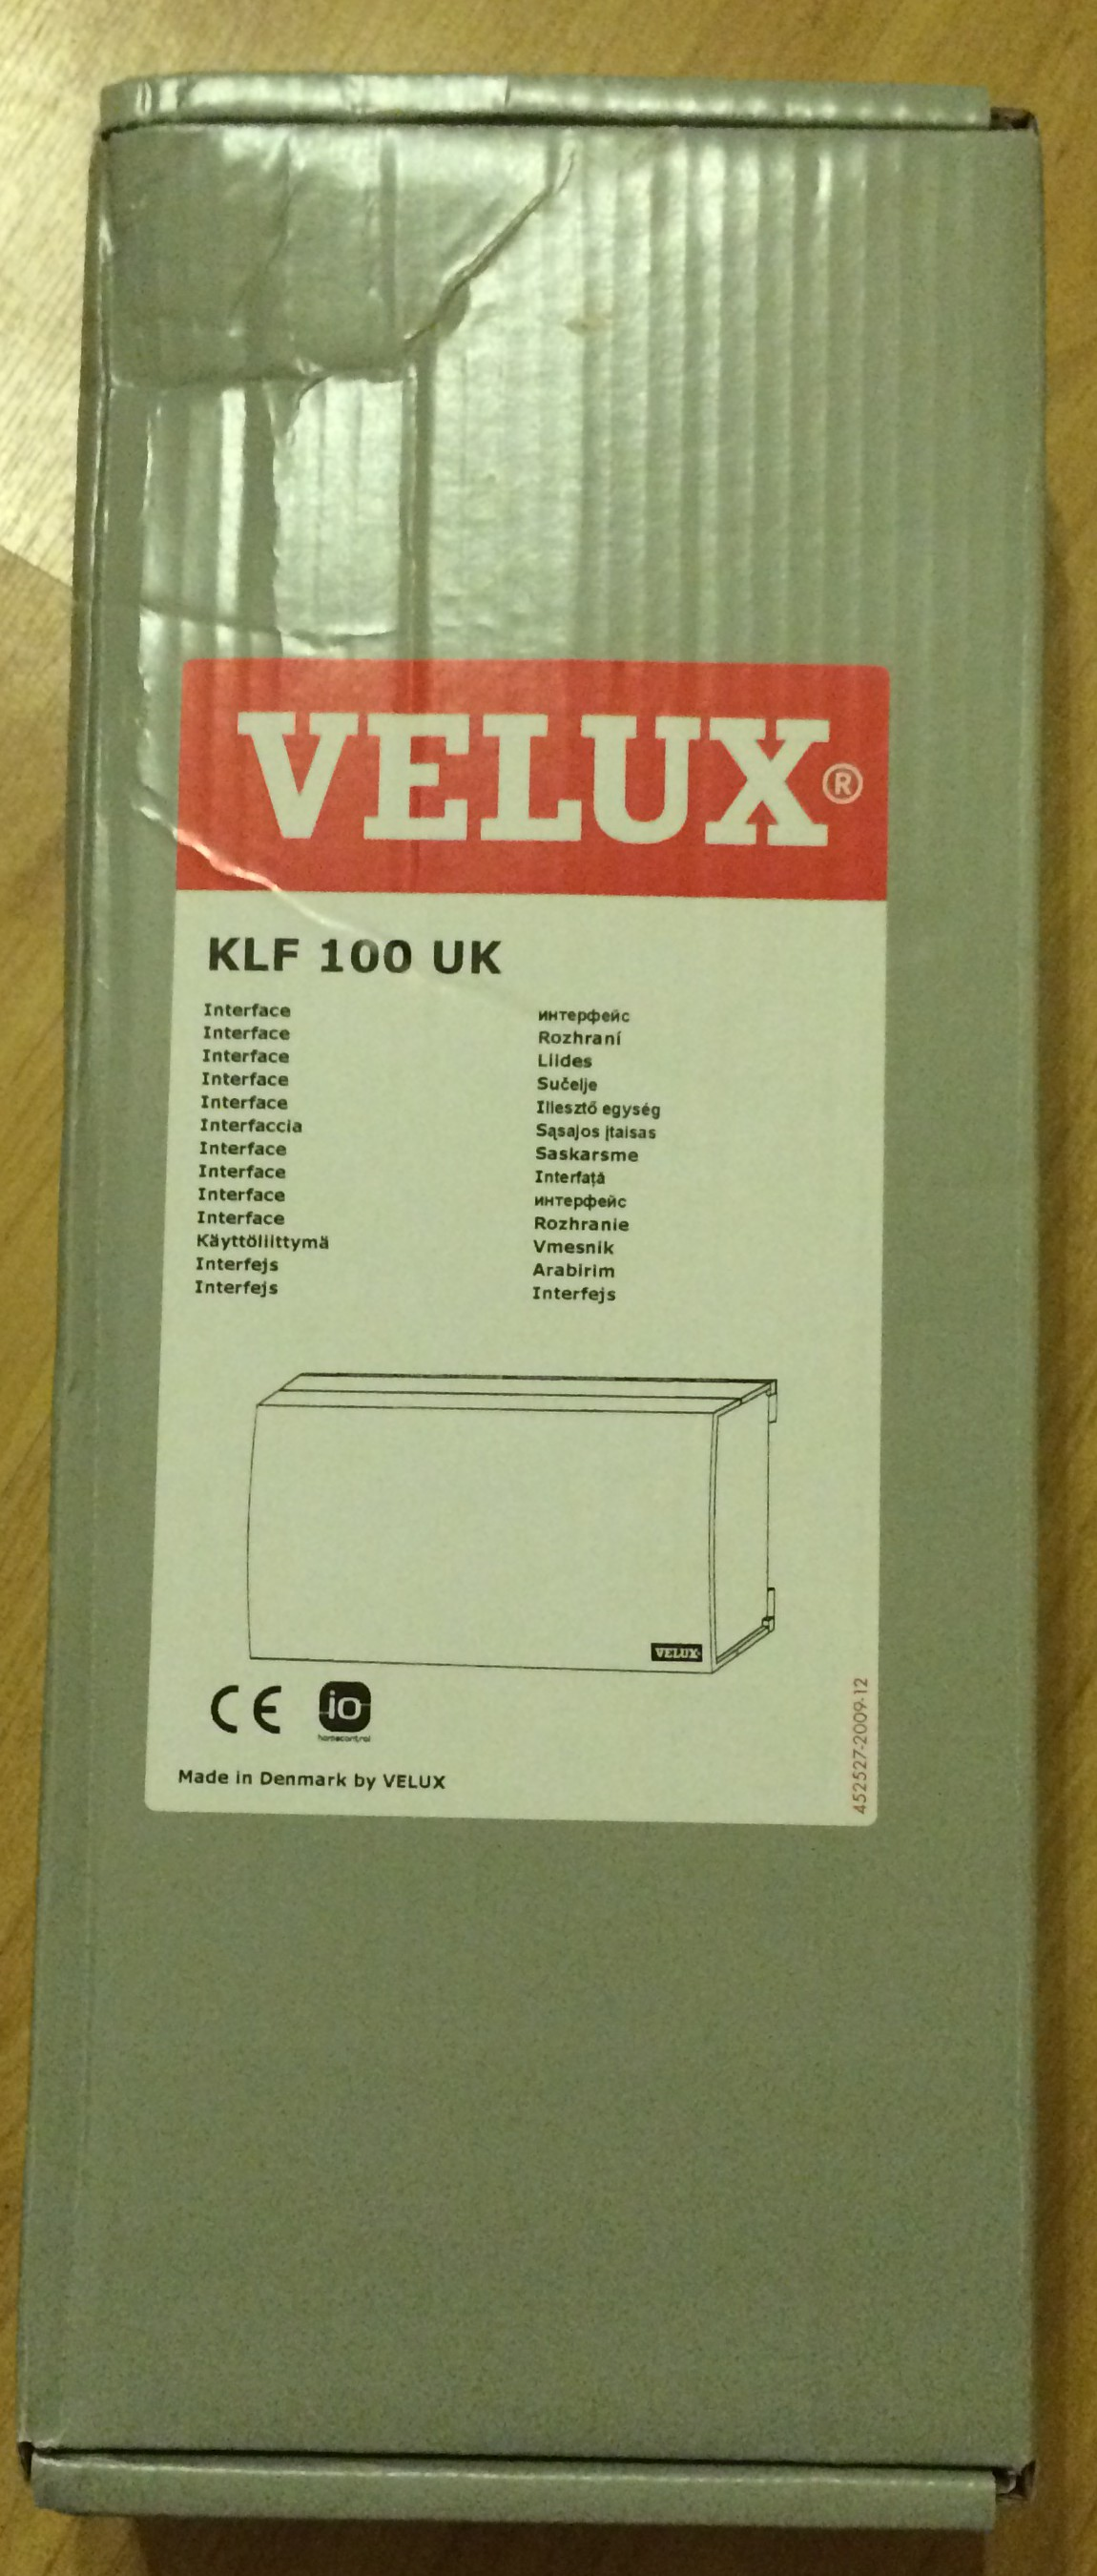 klf100_boxed e1448917936740 controling velux windows with fibaro the world that is k2aab velux klf 100 wiring diagram at crackthecode.co